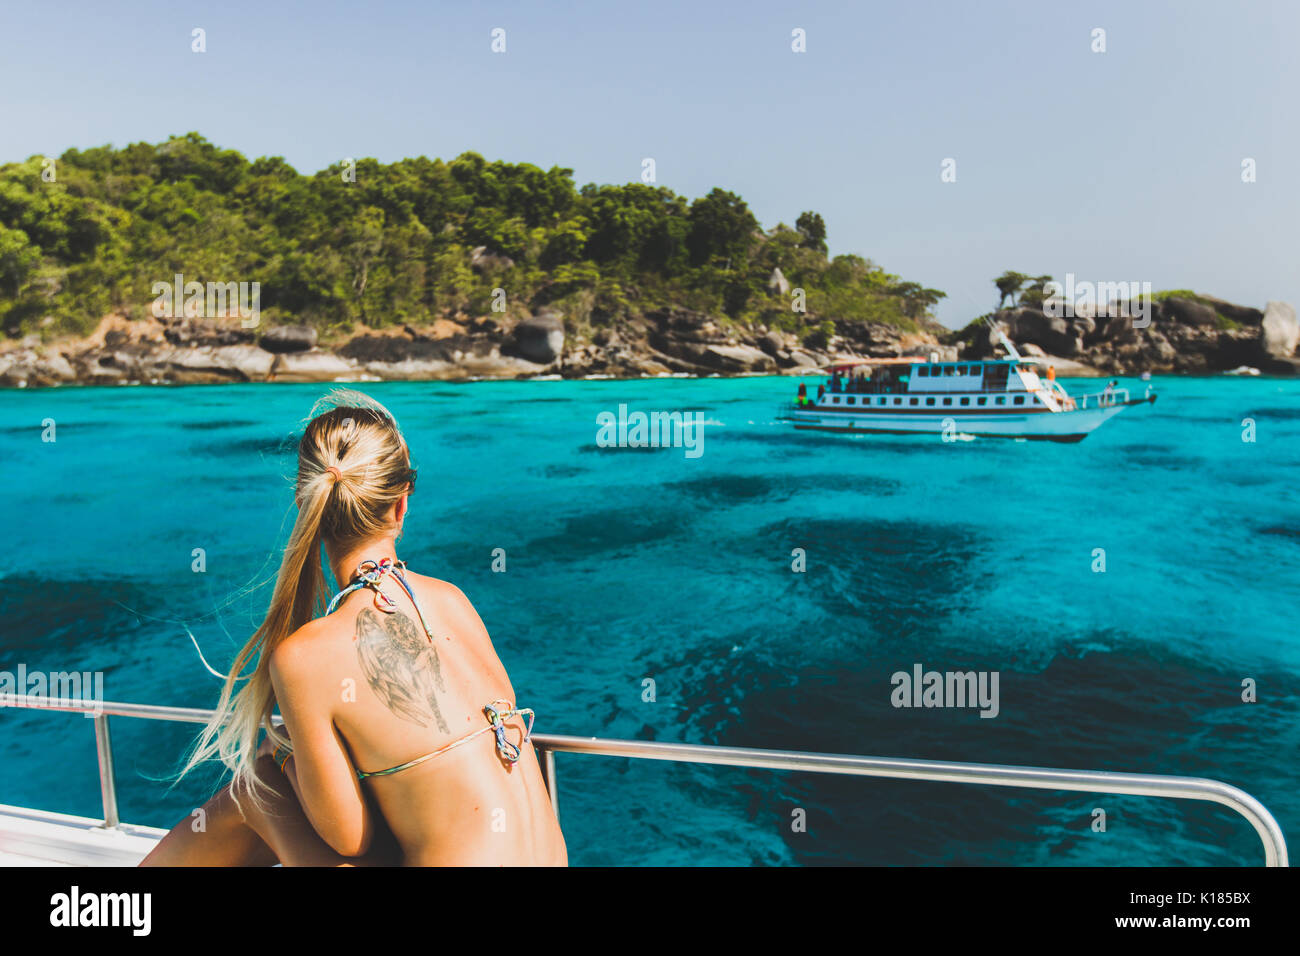 Blonde woman with tattoo on back relaxing on luxury yacht with view of paradise tropical island with turquoise water - Stock Image